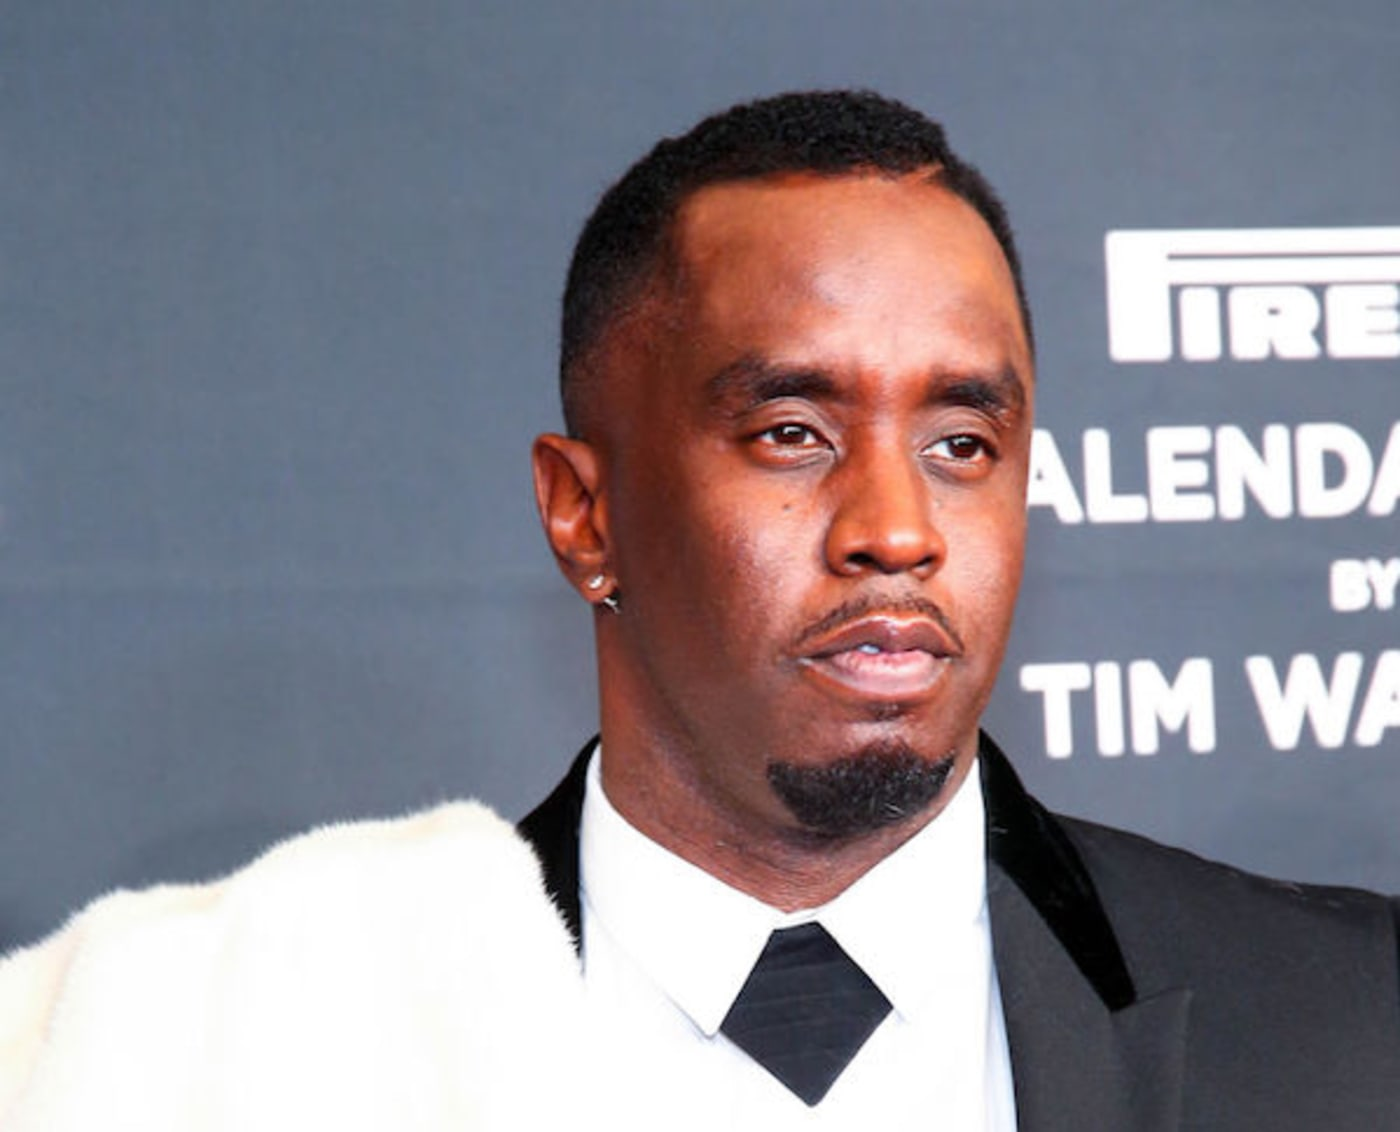 This is a picture of Diddy.